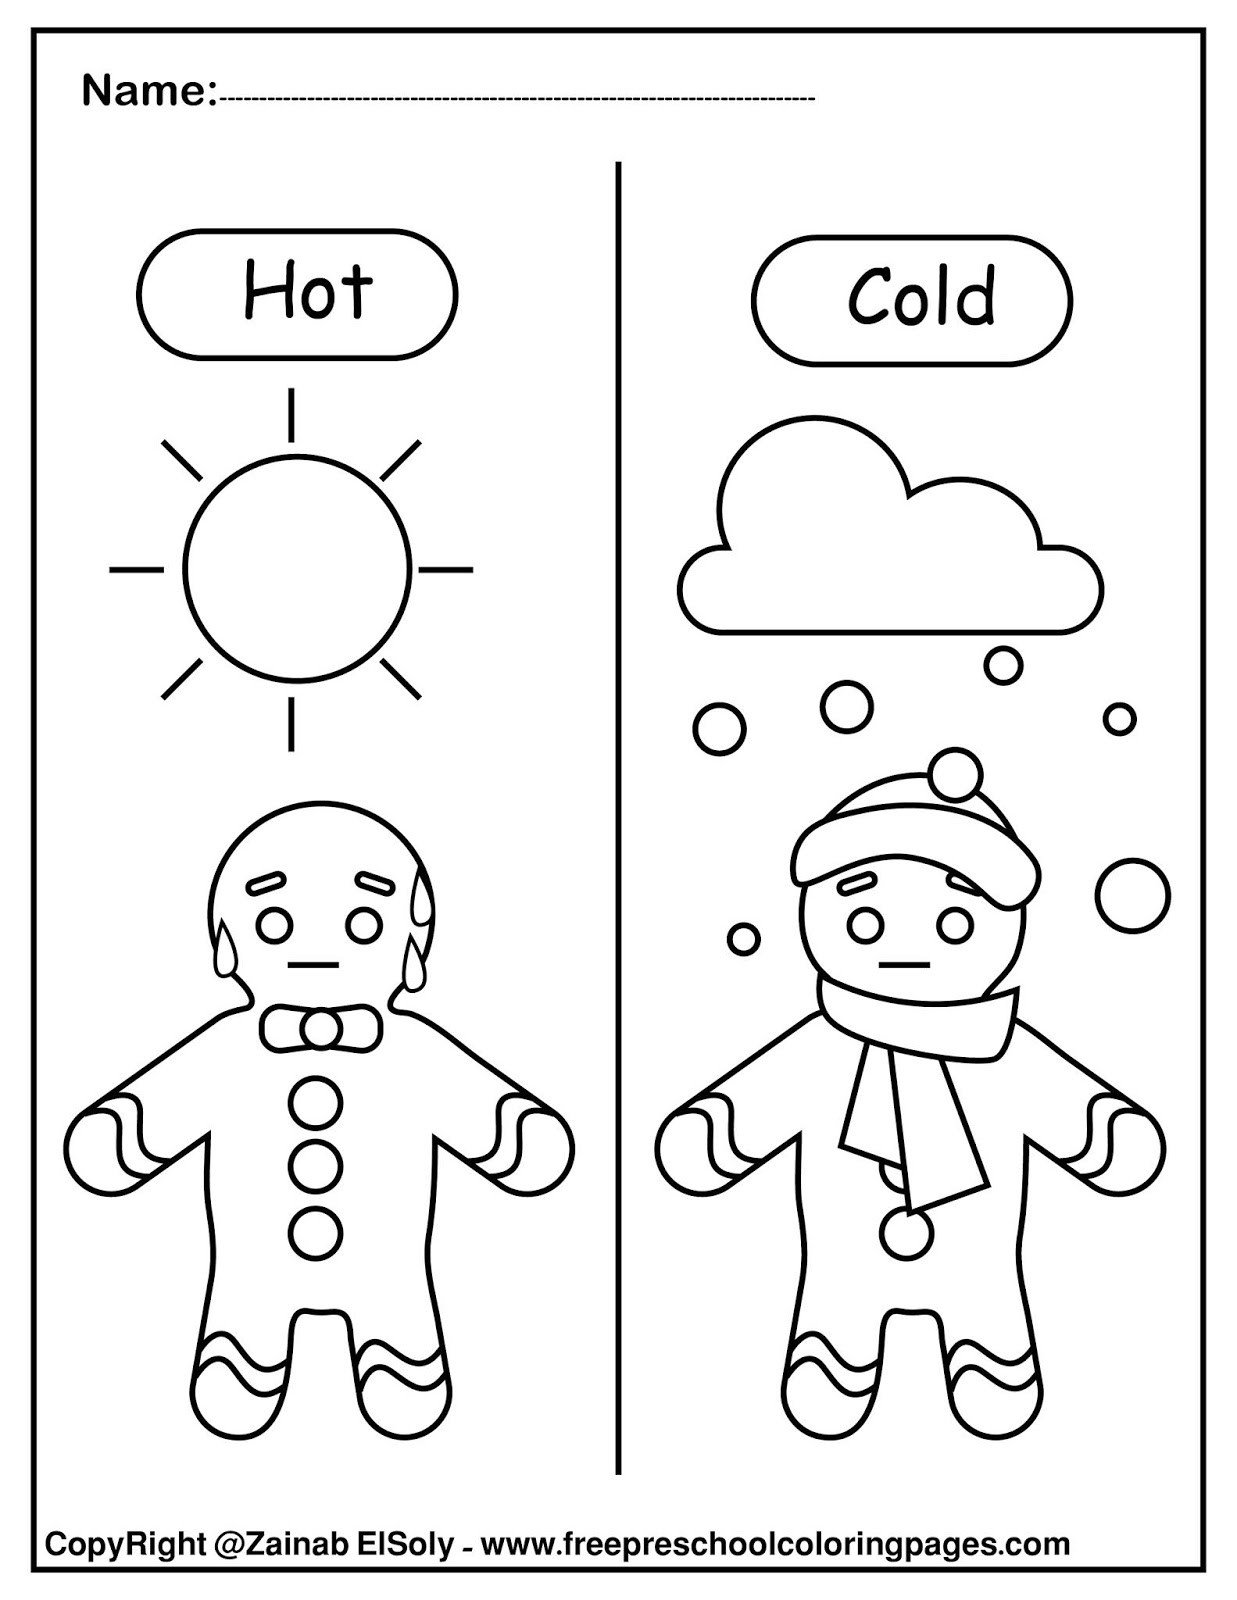 Opposites Worksheet for Kindergarten Set Of Gingerbread Man Opposites for Kids